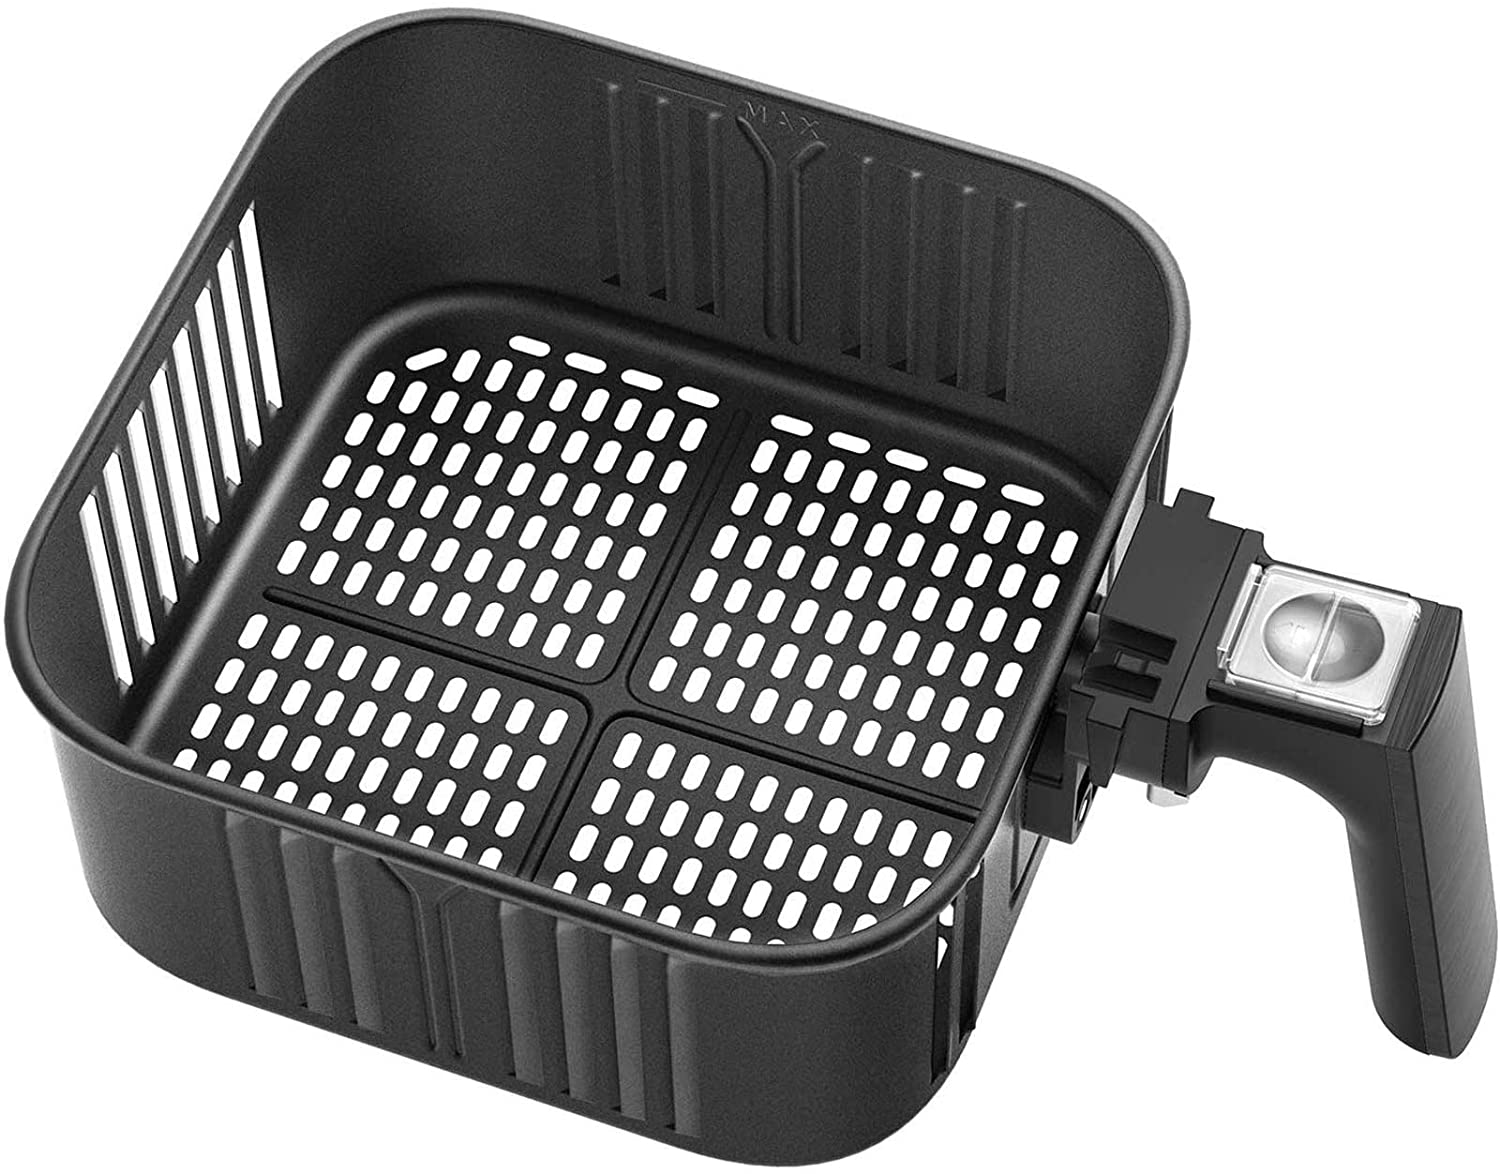 Air Fryer Replacement Basket 5.8QT For COSORI Black CP158-AF, CS158 & CO158 Air Fryers, Non-Stick Fry Basket, Dishwasher Safe, C158-FB